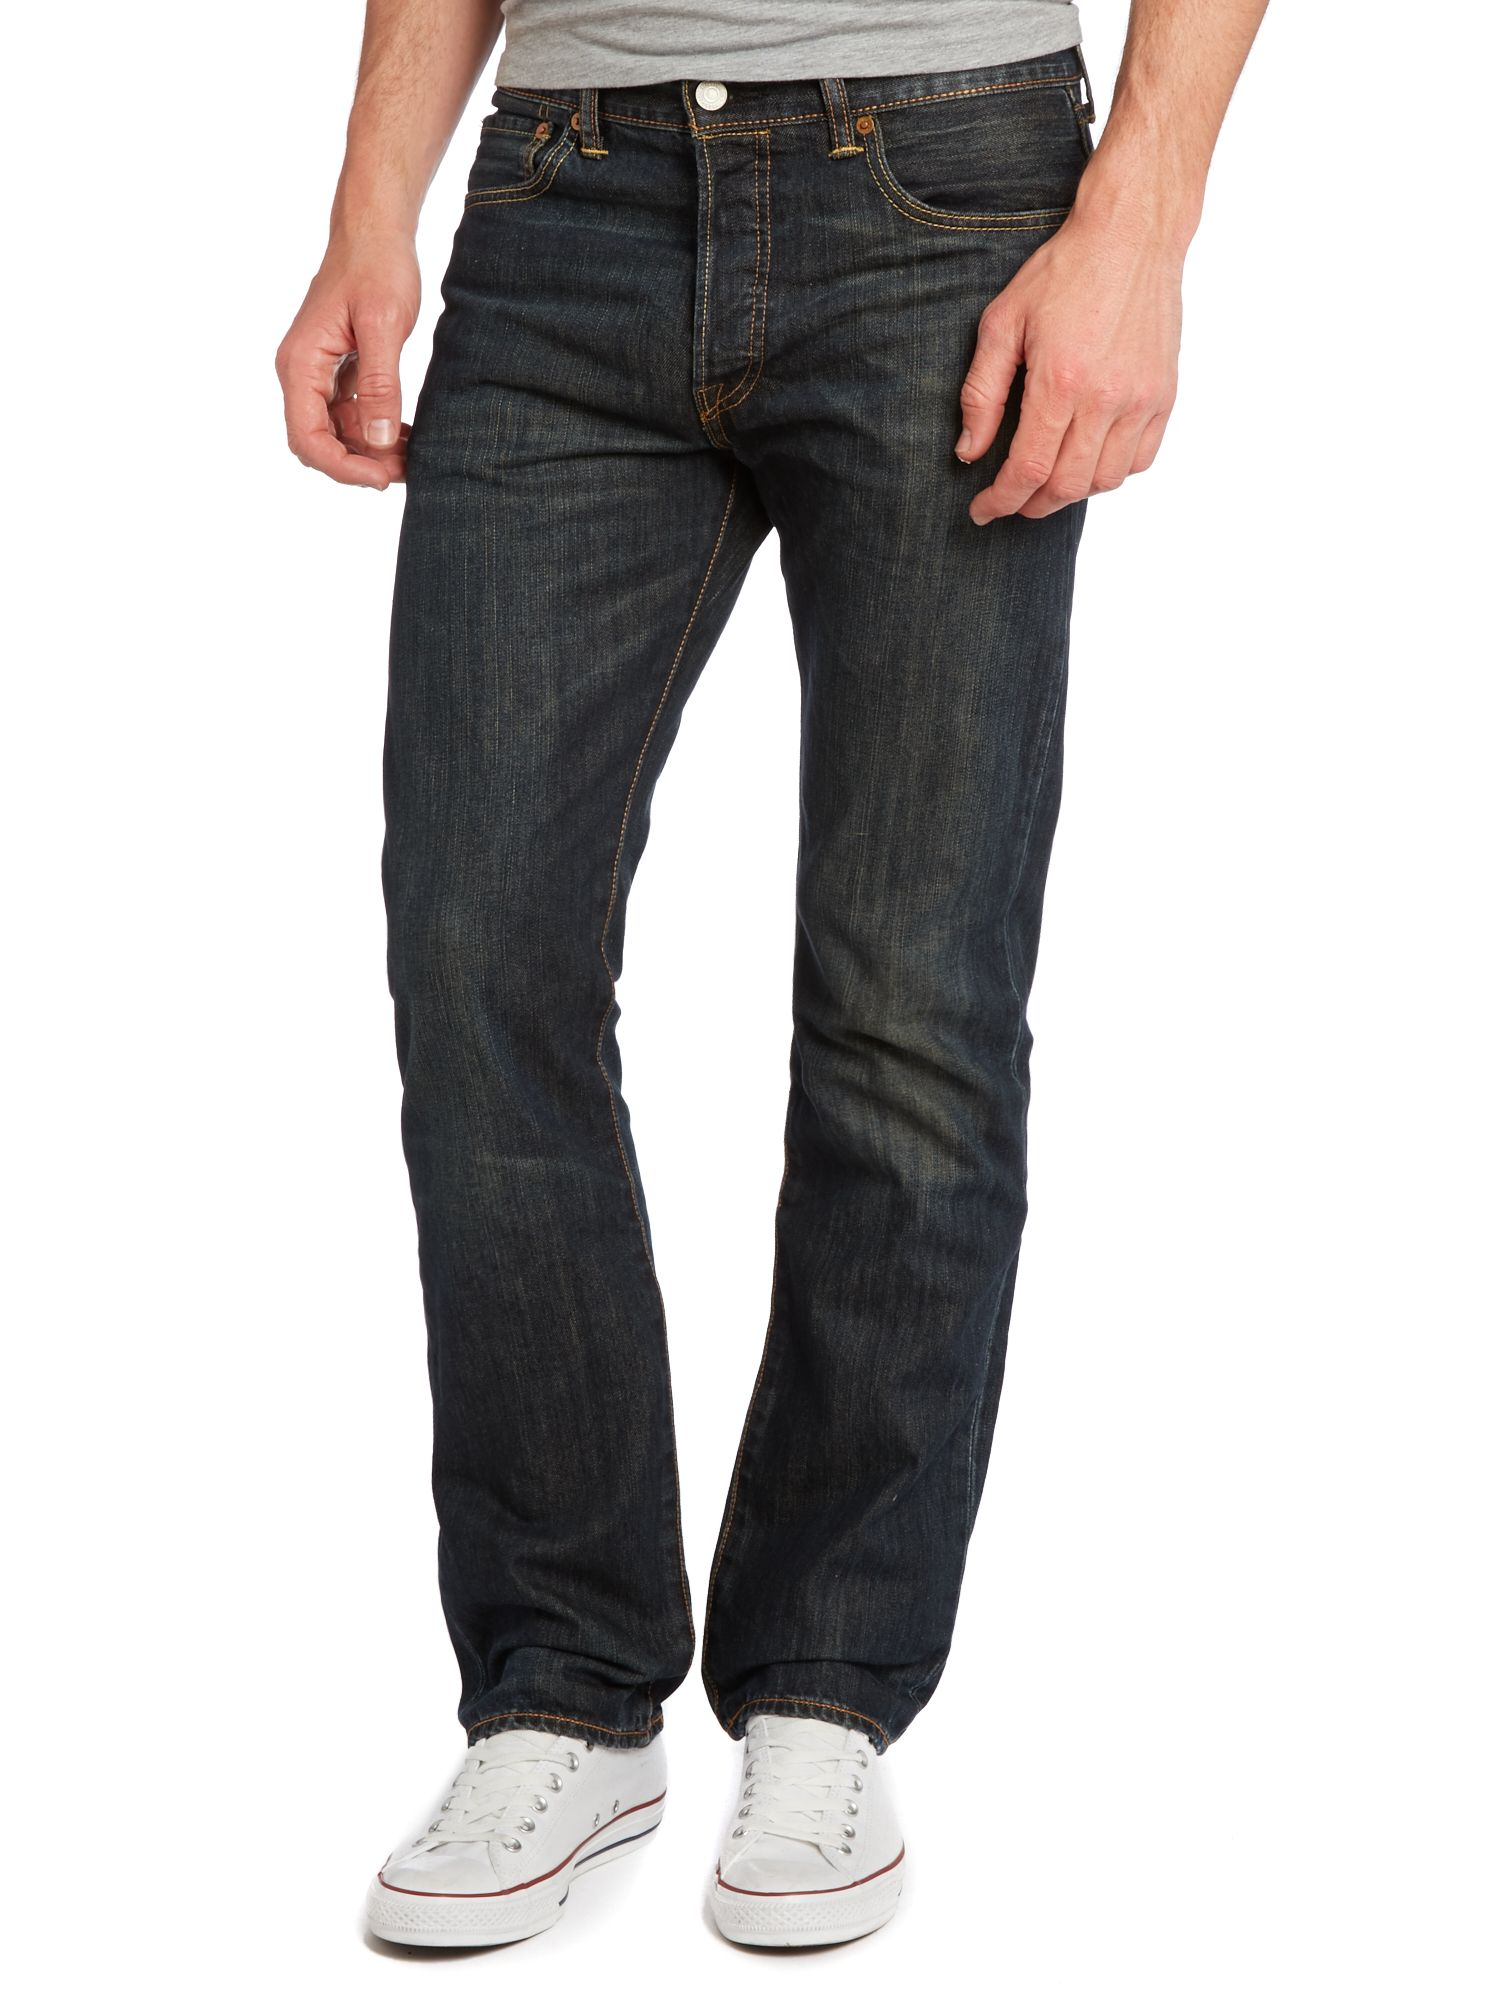 501 Dusty Black Straight Jeans